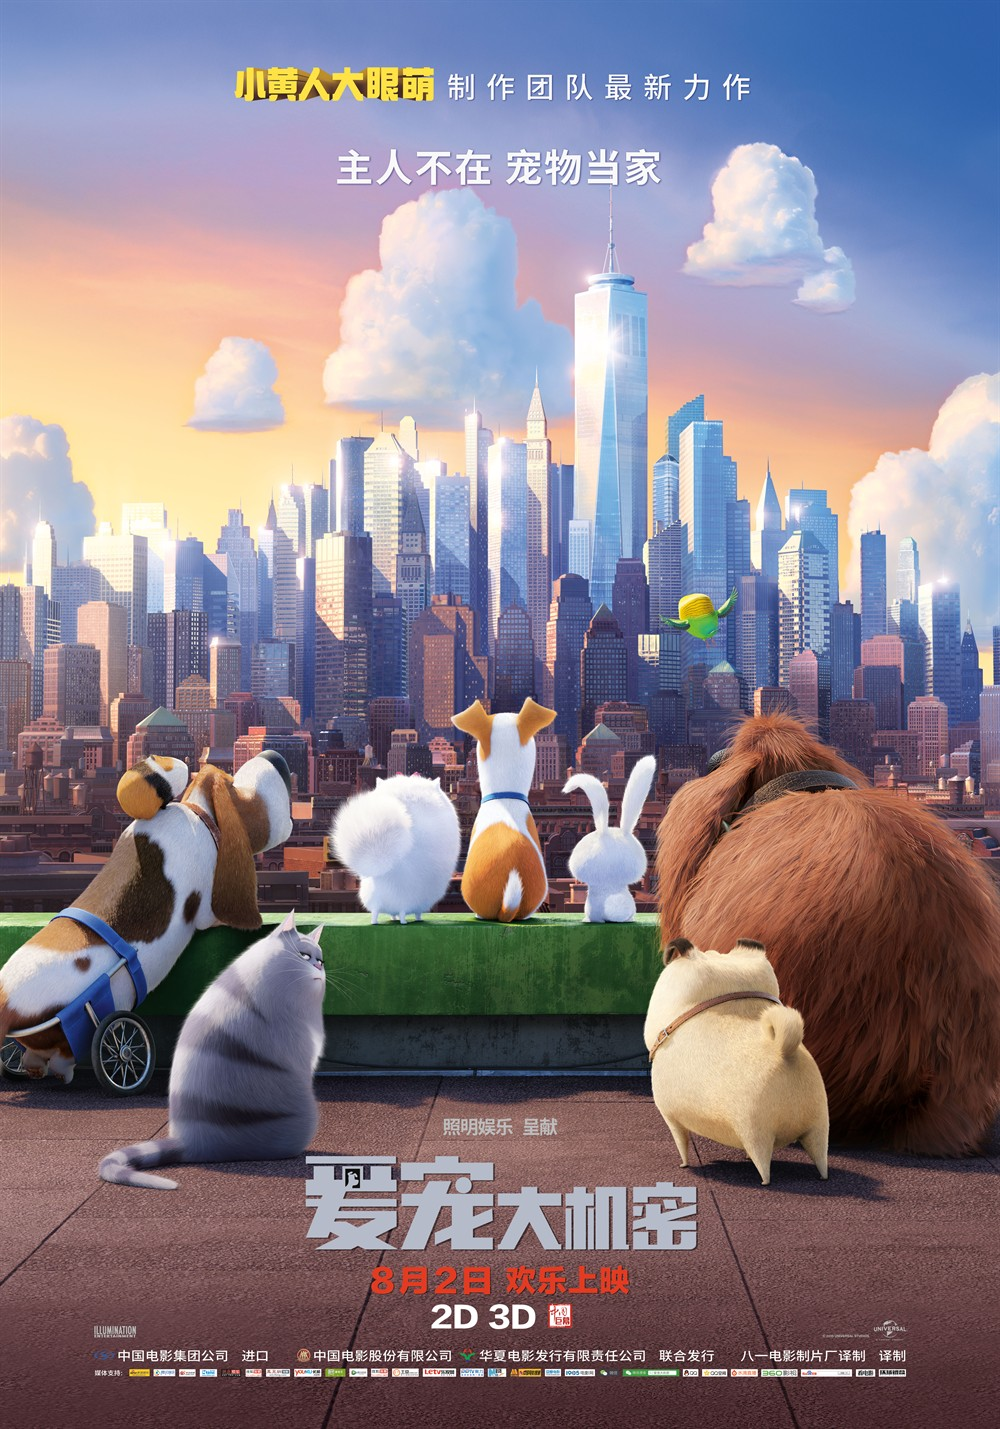 爱宠大机密 (2016) The Secret Life of Pets[59.12GB]